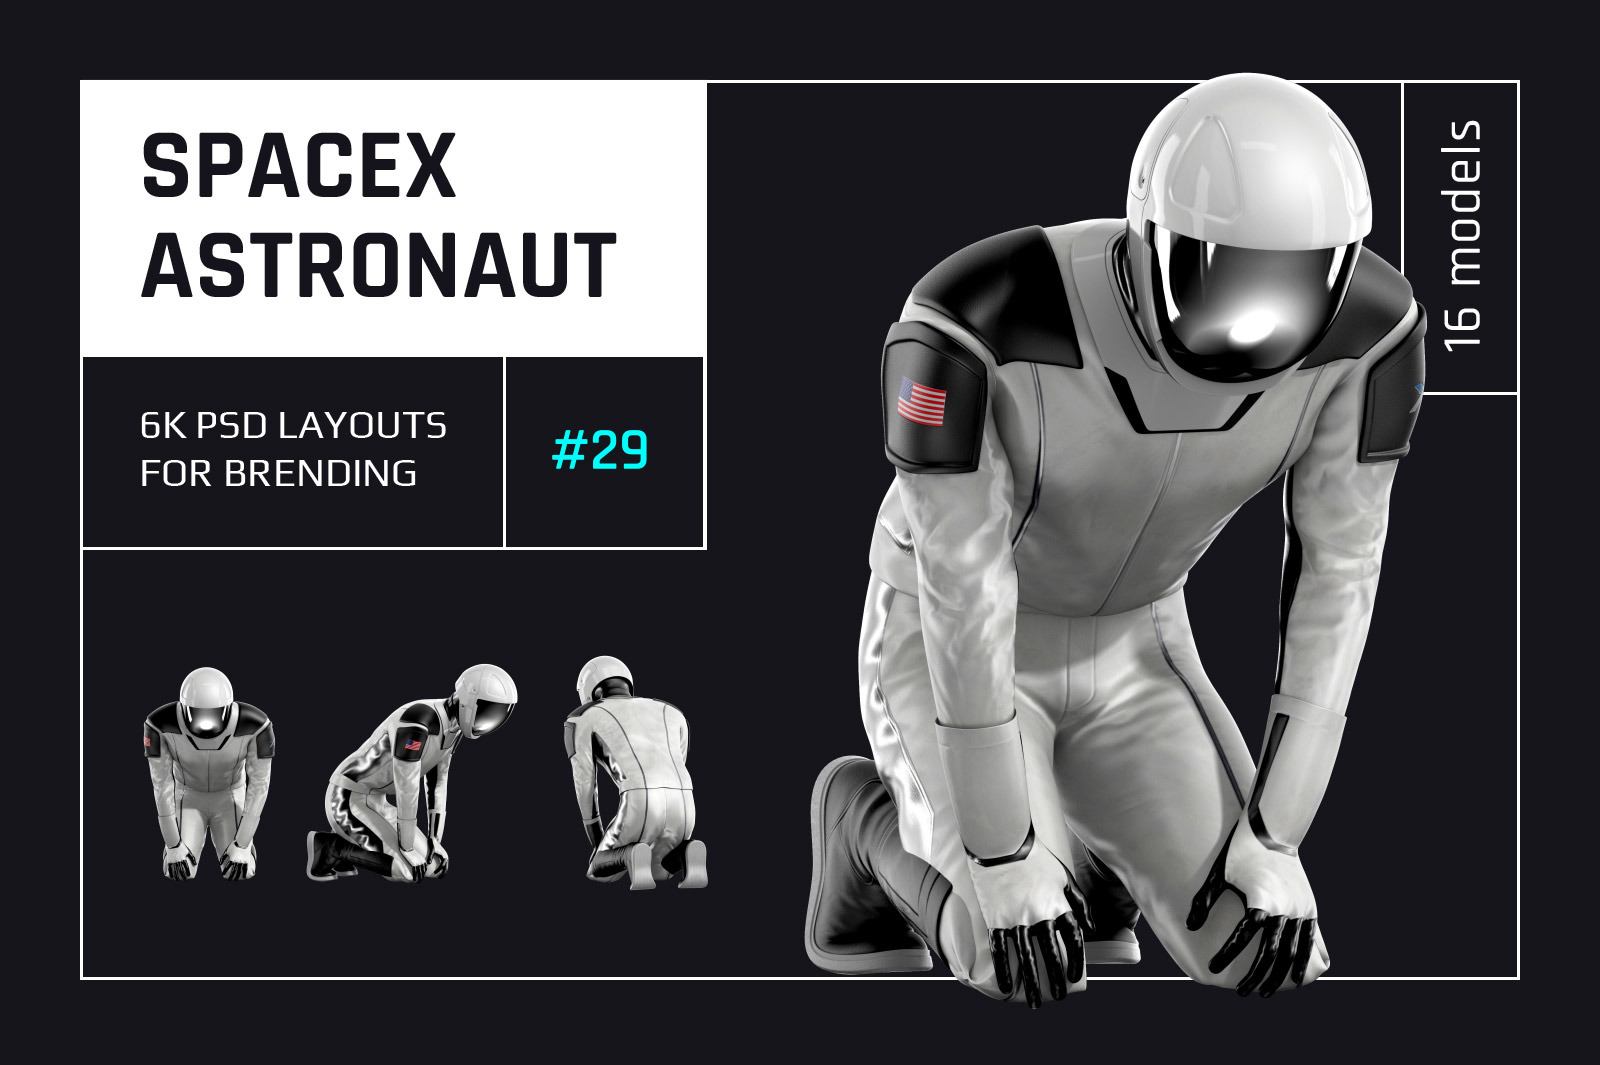 PSD Mockup 3D model SpaceX Astronaut #29